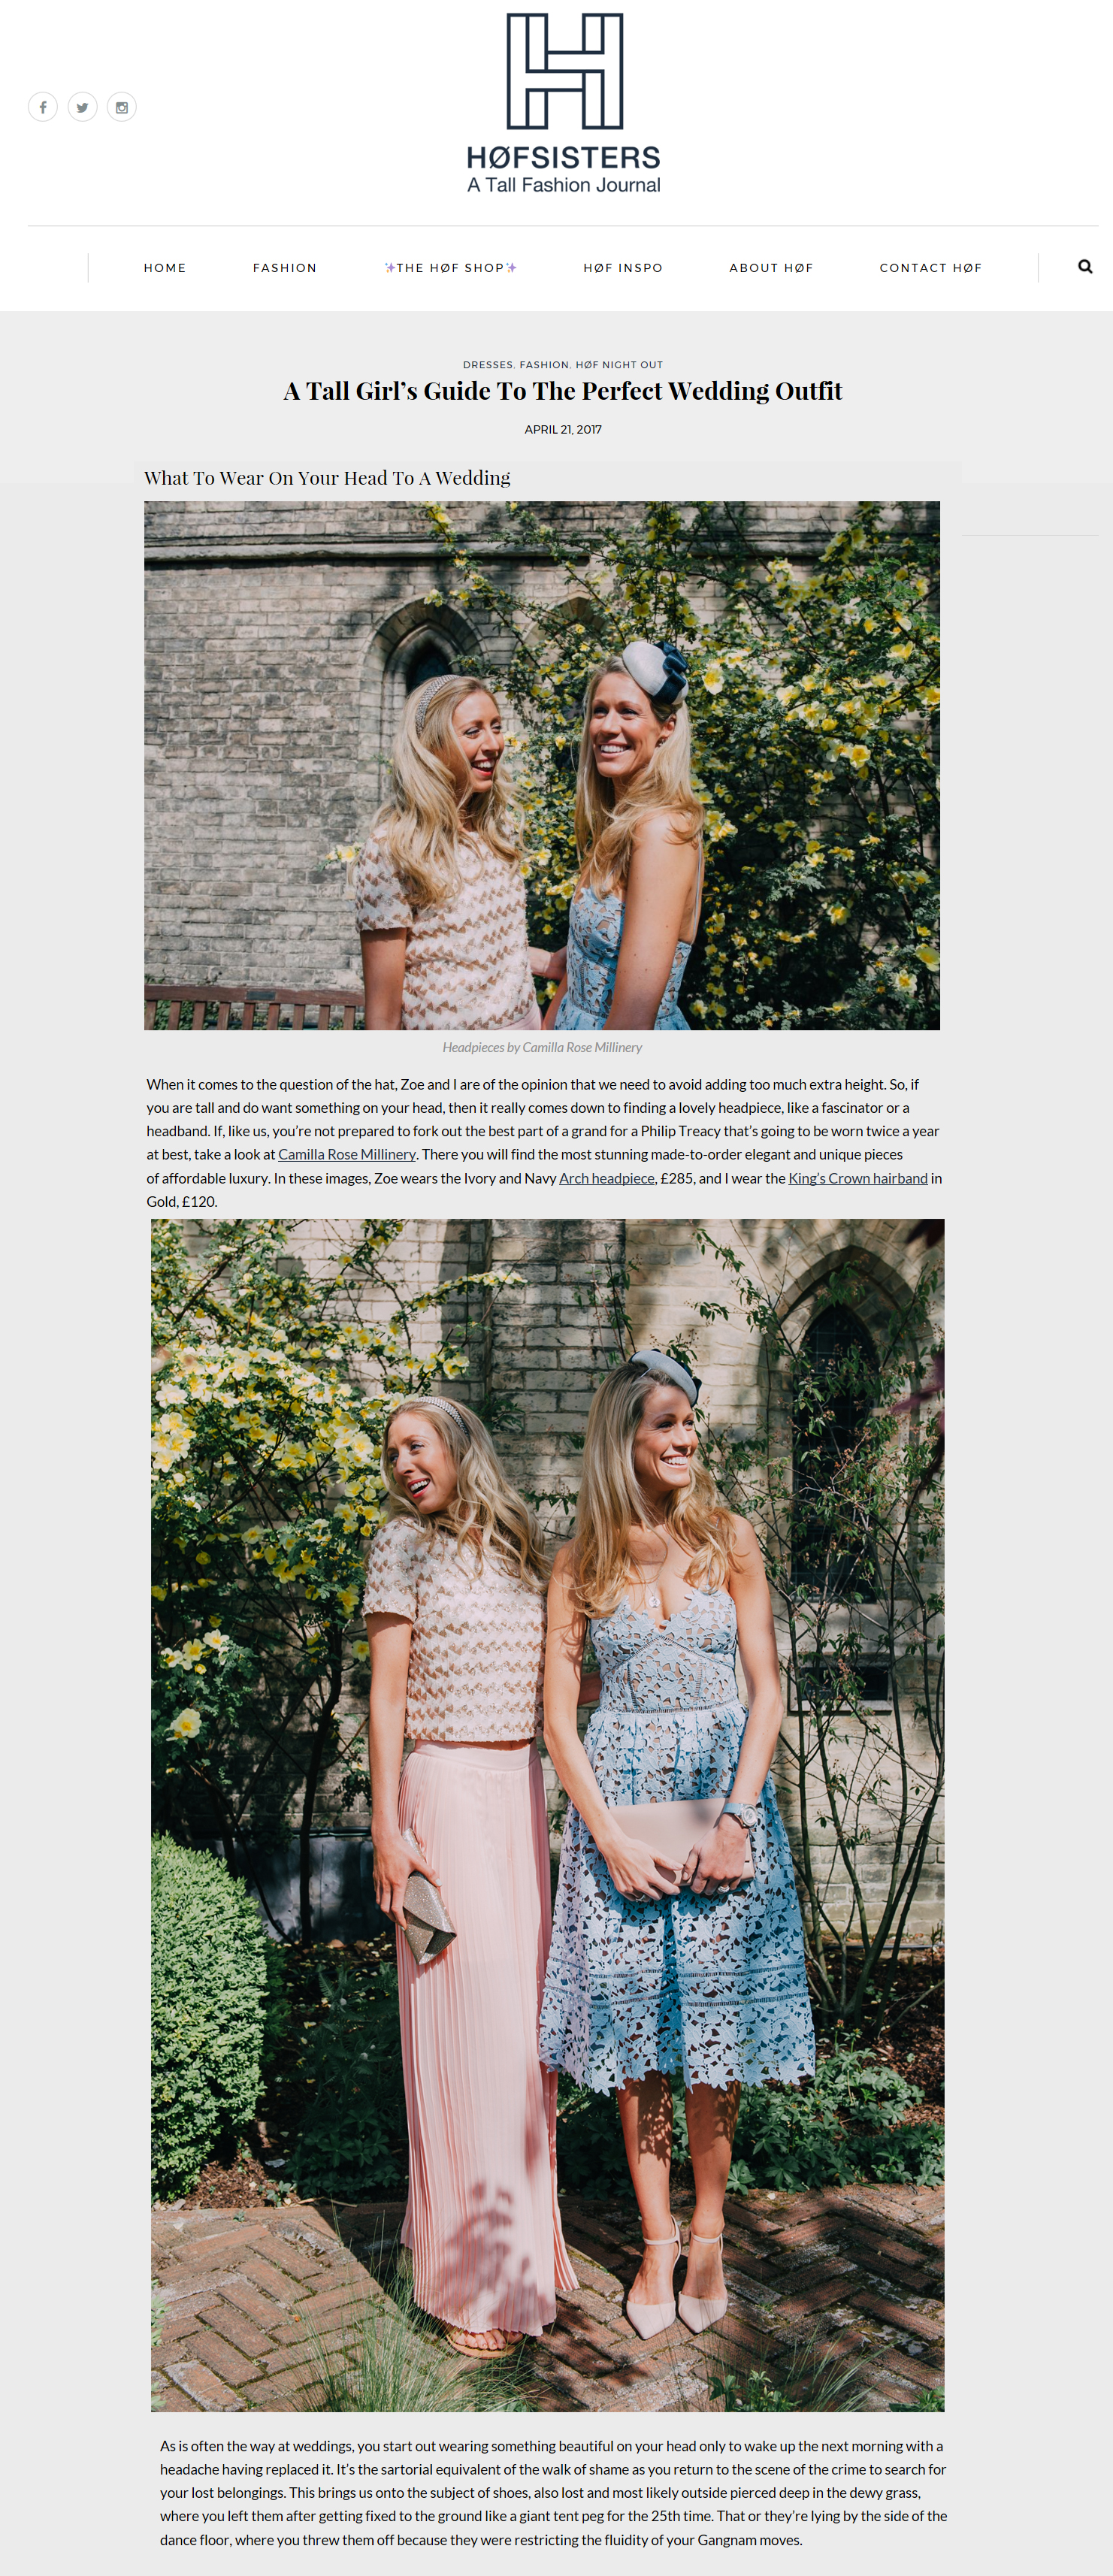 HoF Sisters, Tall Fashion Journal - 21st April 2017  (Kings Crown Hairband & Arch Headpiece)